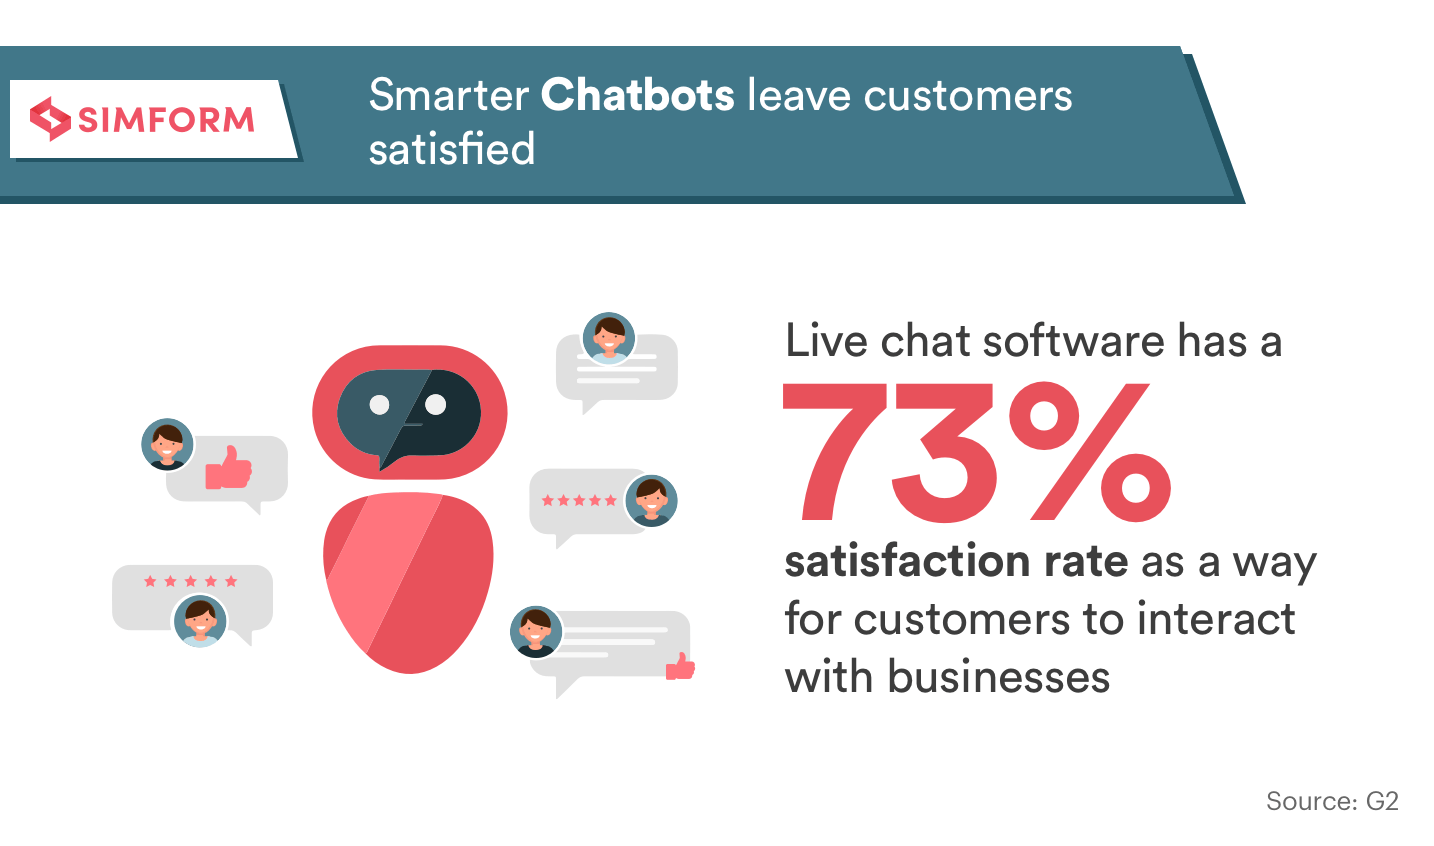 Ace customer interactions with smarter Chatbots